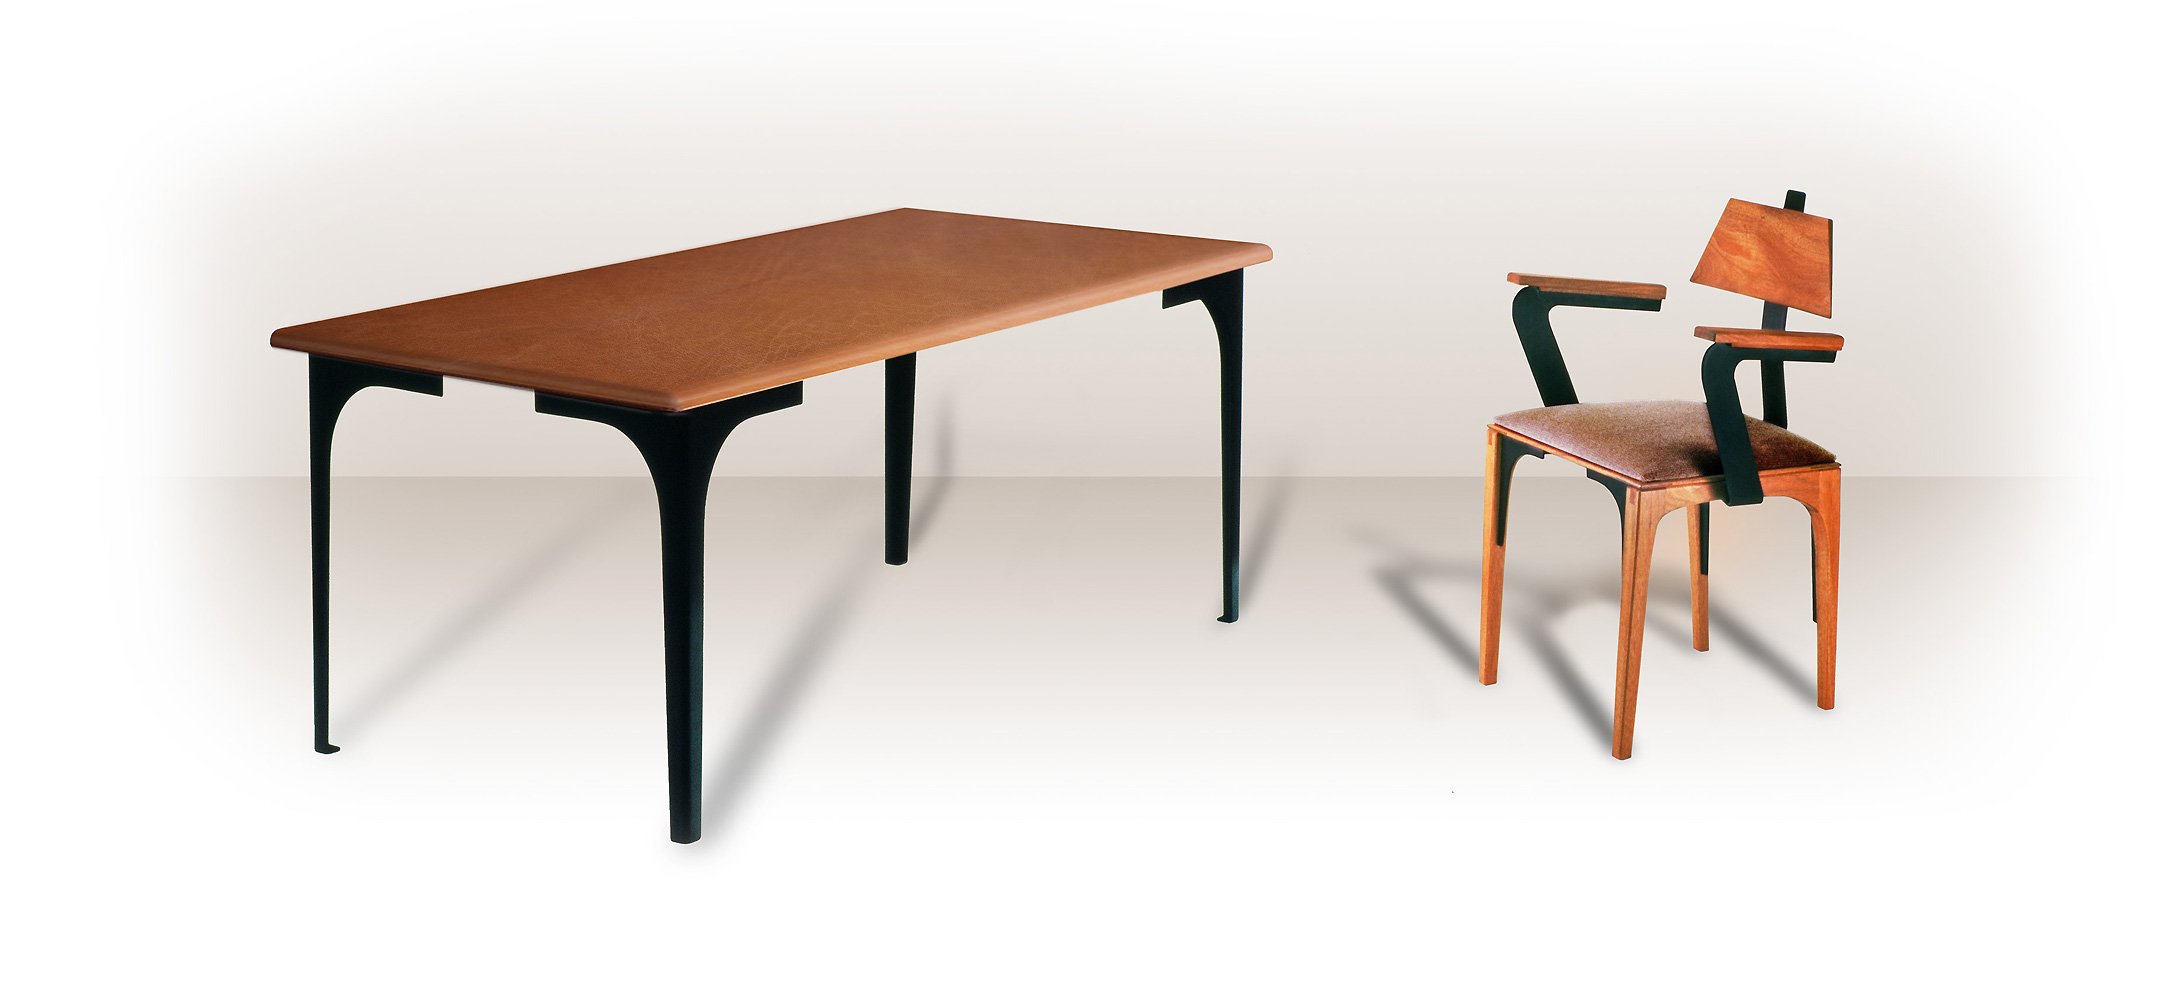 Benucci Chairs And Tables Are Sleek, Contemporary Functional Art. While The  Iconic Spare And Elegant Design Is Recognized For Its Elegant Simplicity,  ...